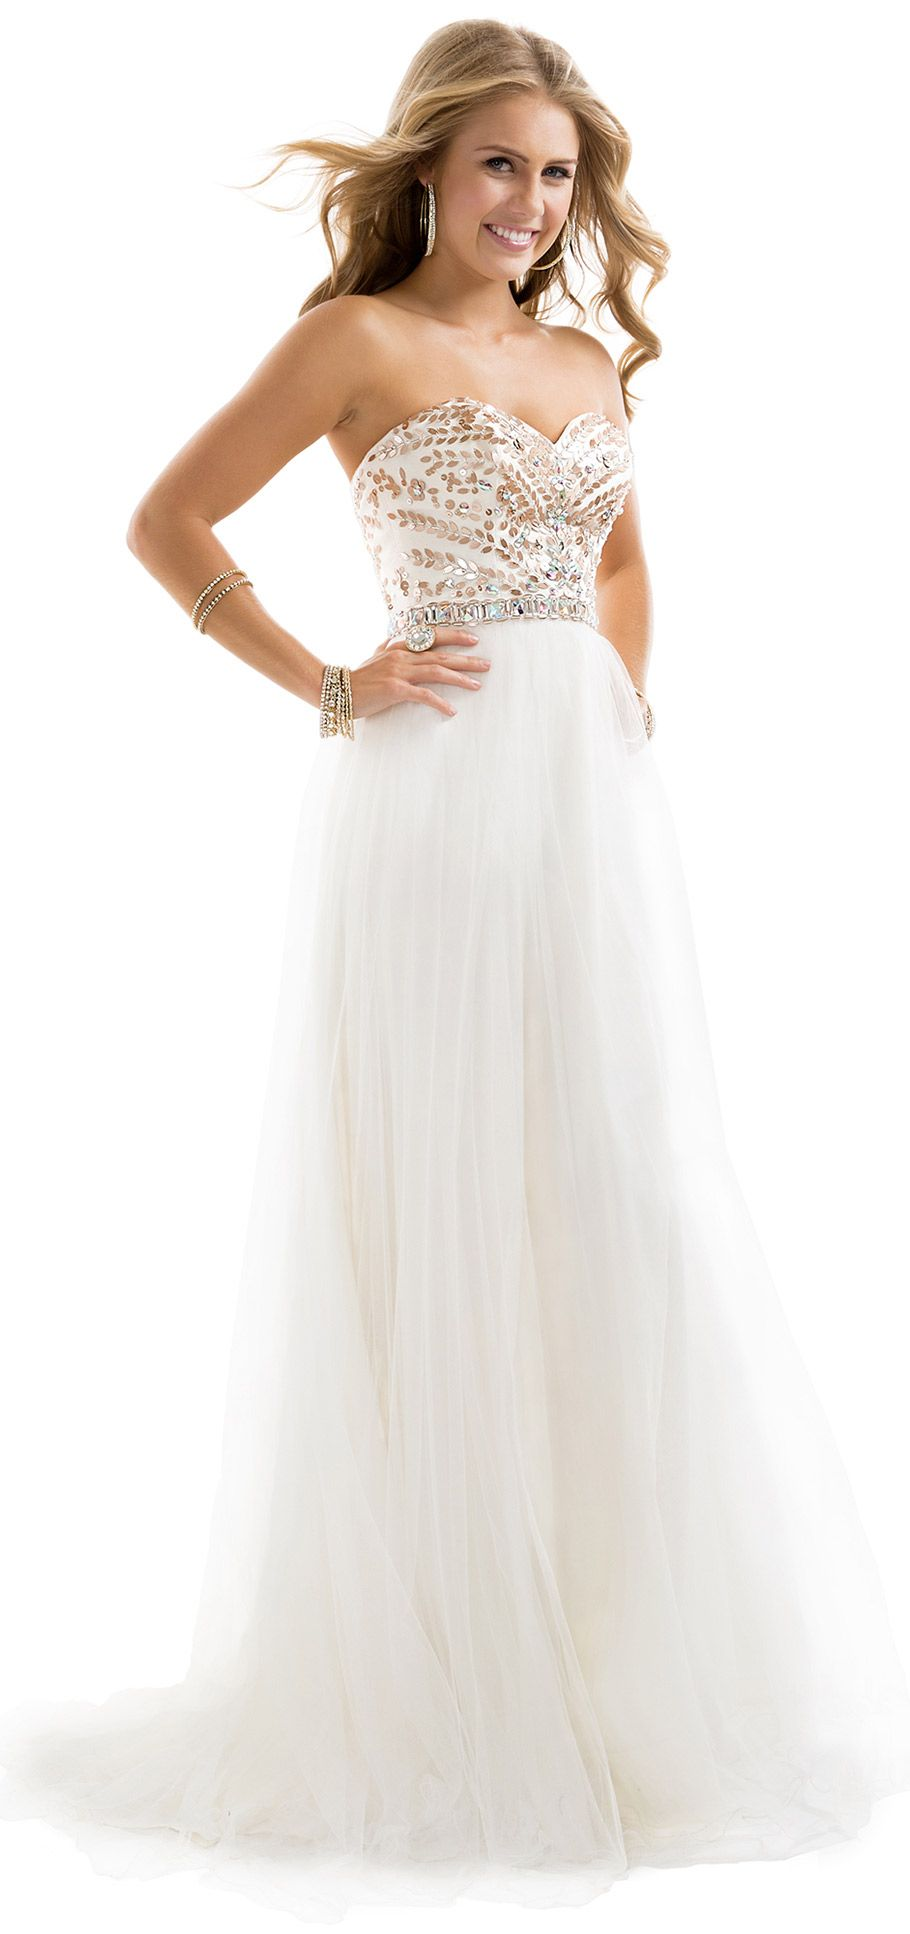 White and rose gold evening dress with sweetheart neckline from Flirt Prom